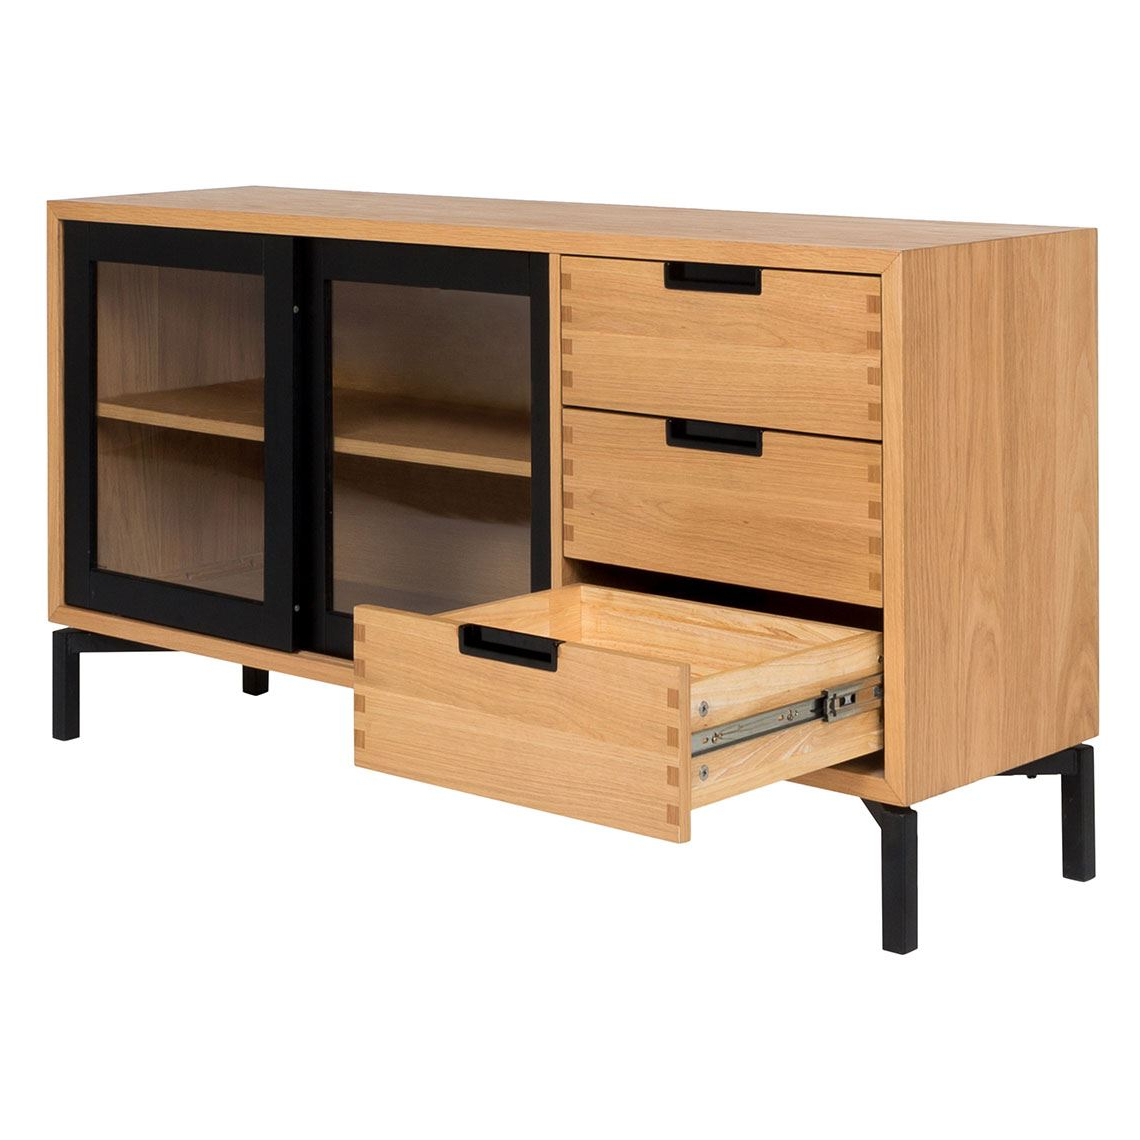 Atelier 2 Door 3 Drawer Buffet, Black & Oak Intended For 3 Drawer Storage Buffets (View 1 of 20)